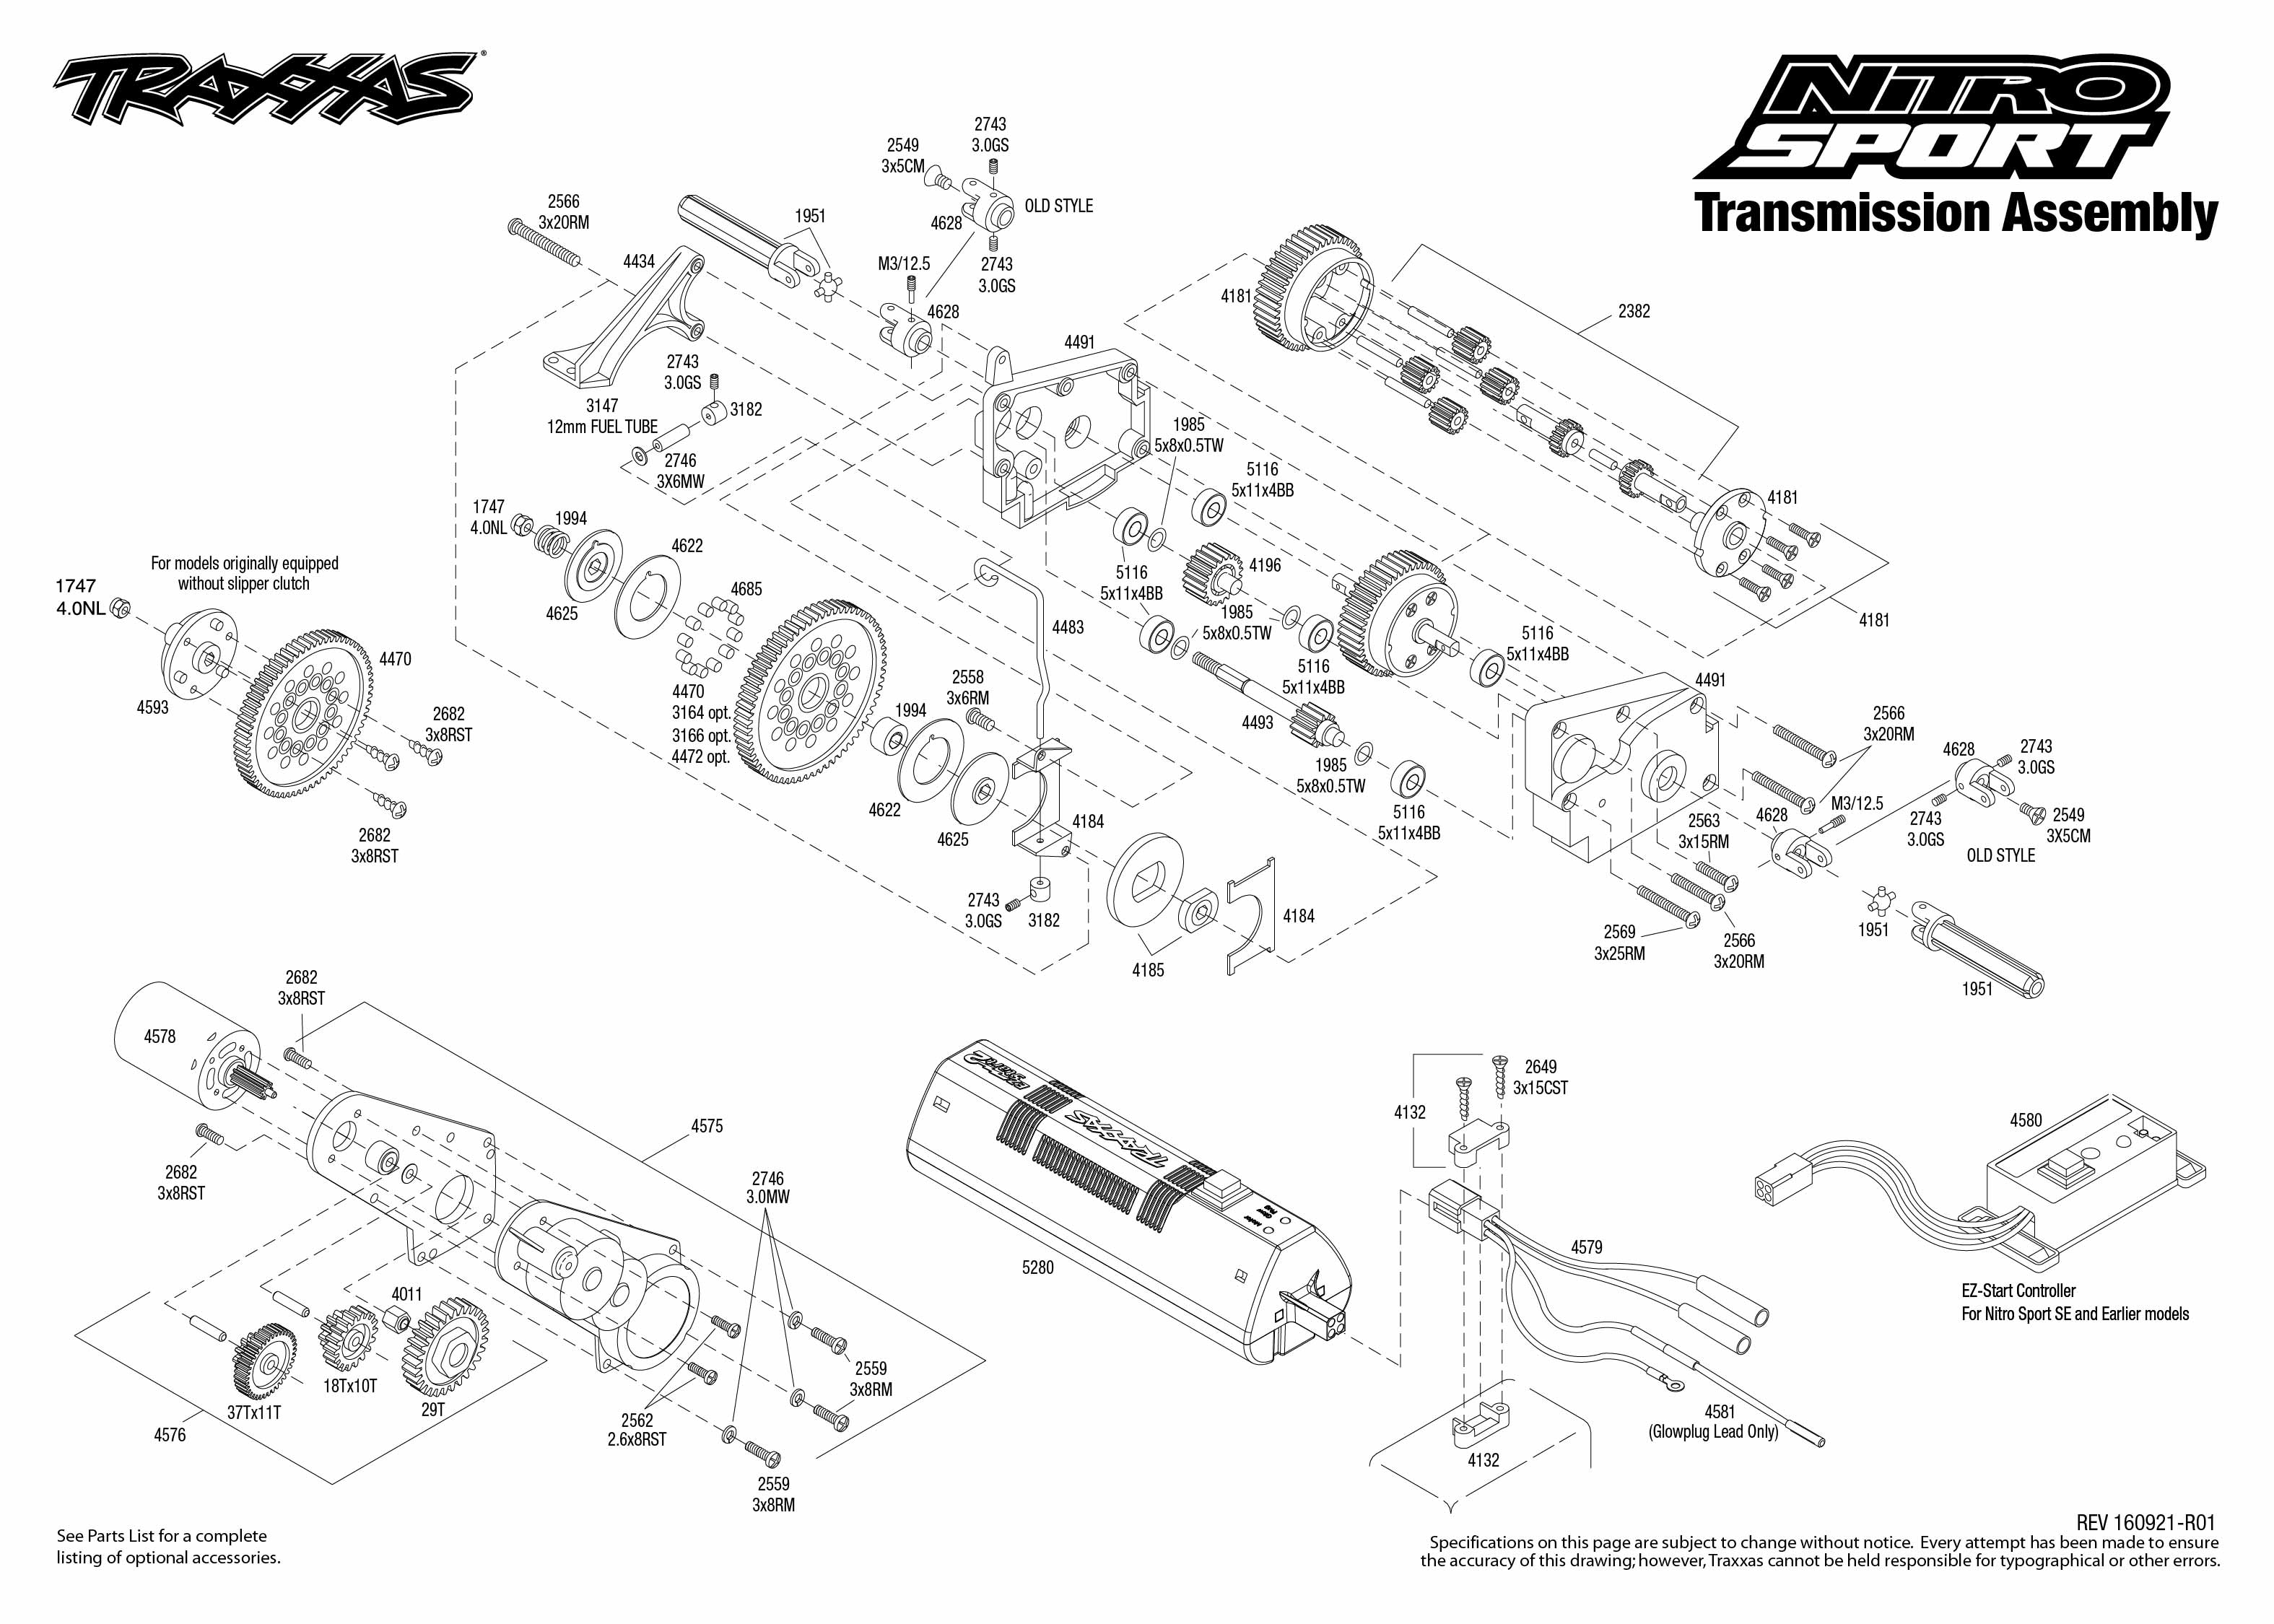 Traxxas Nitro Rustler Exploded Diagram Great Installation Of Parts For Sport 45104 1 Transmission Assembly View Rh Com